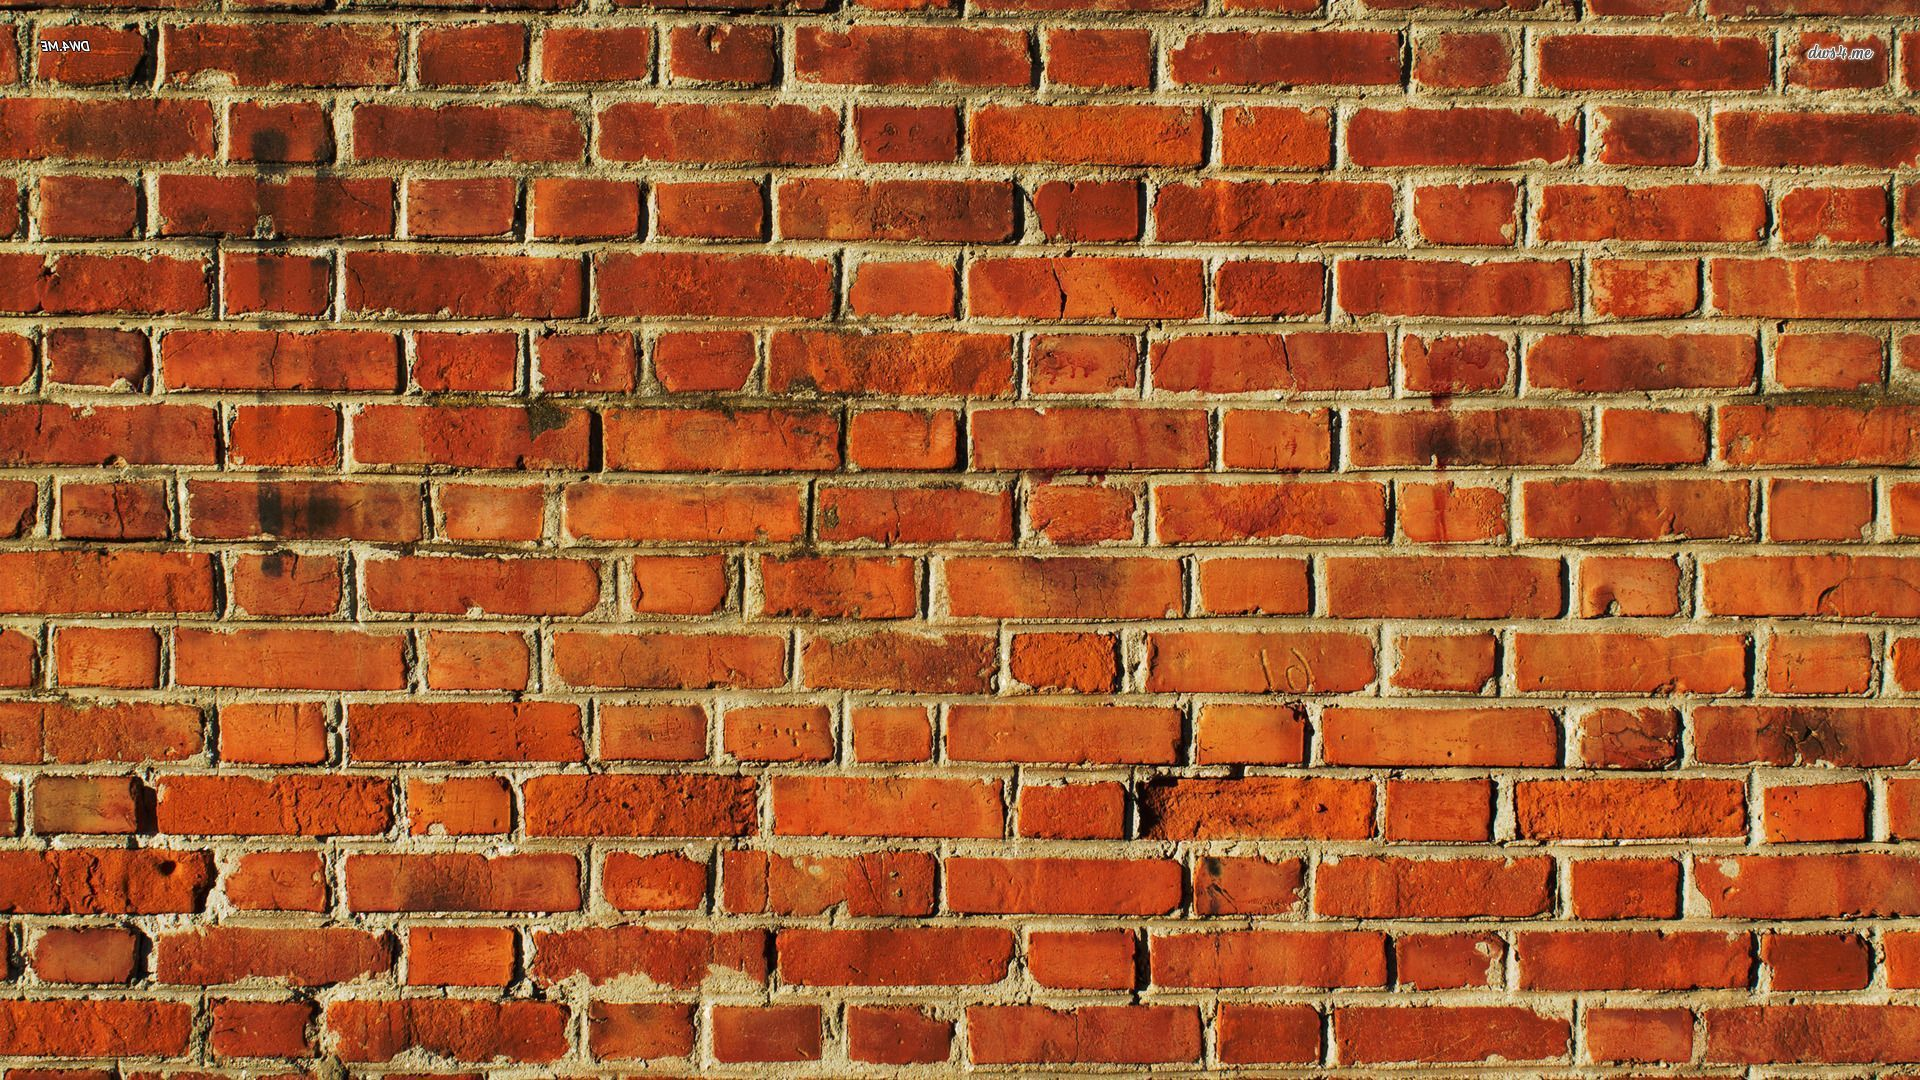 Brick wall wallpaper background factory pinterest for Wallpaper images for house walls